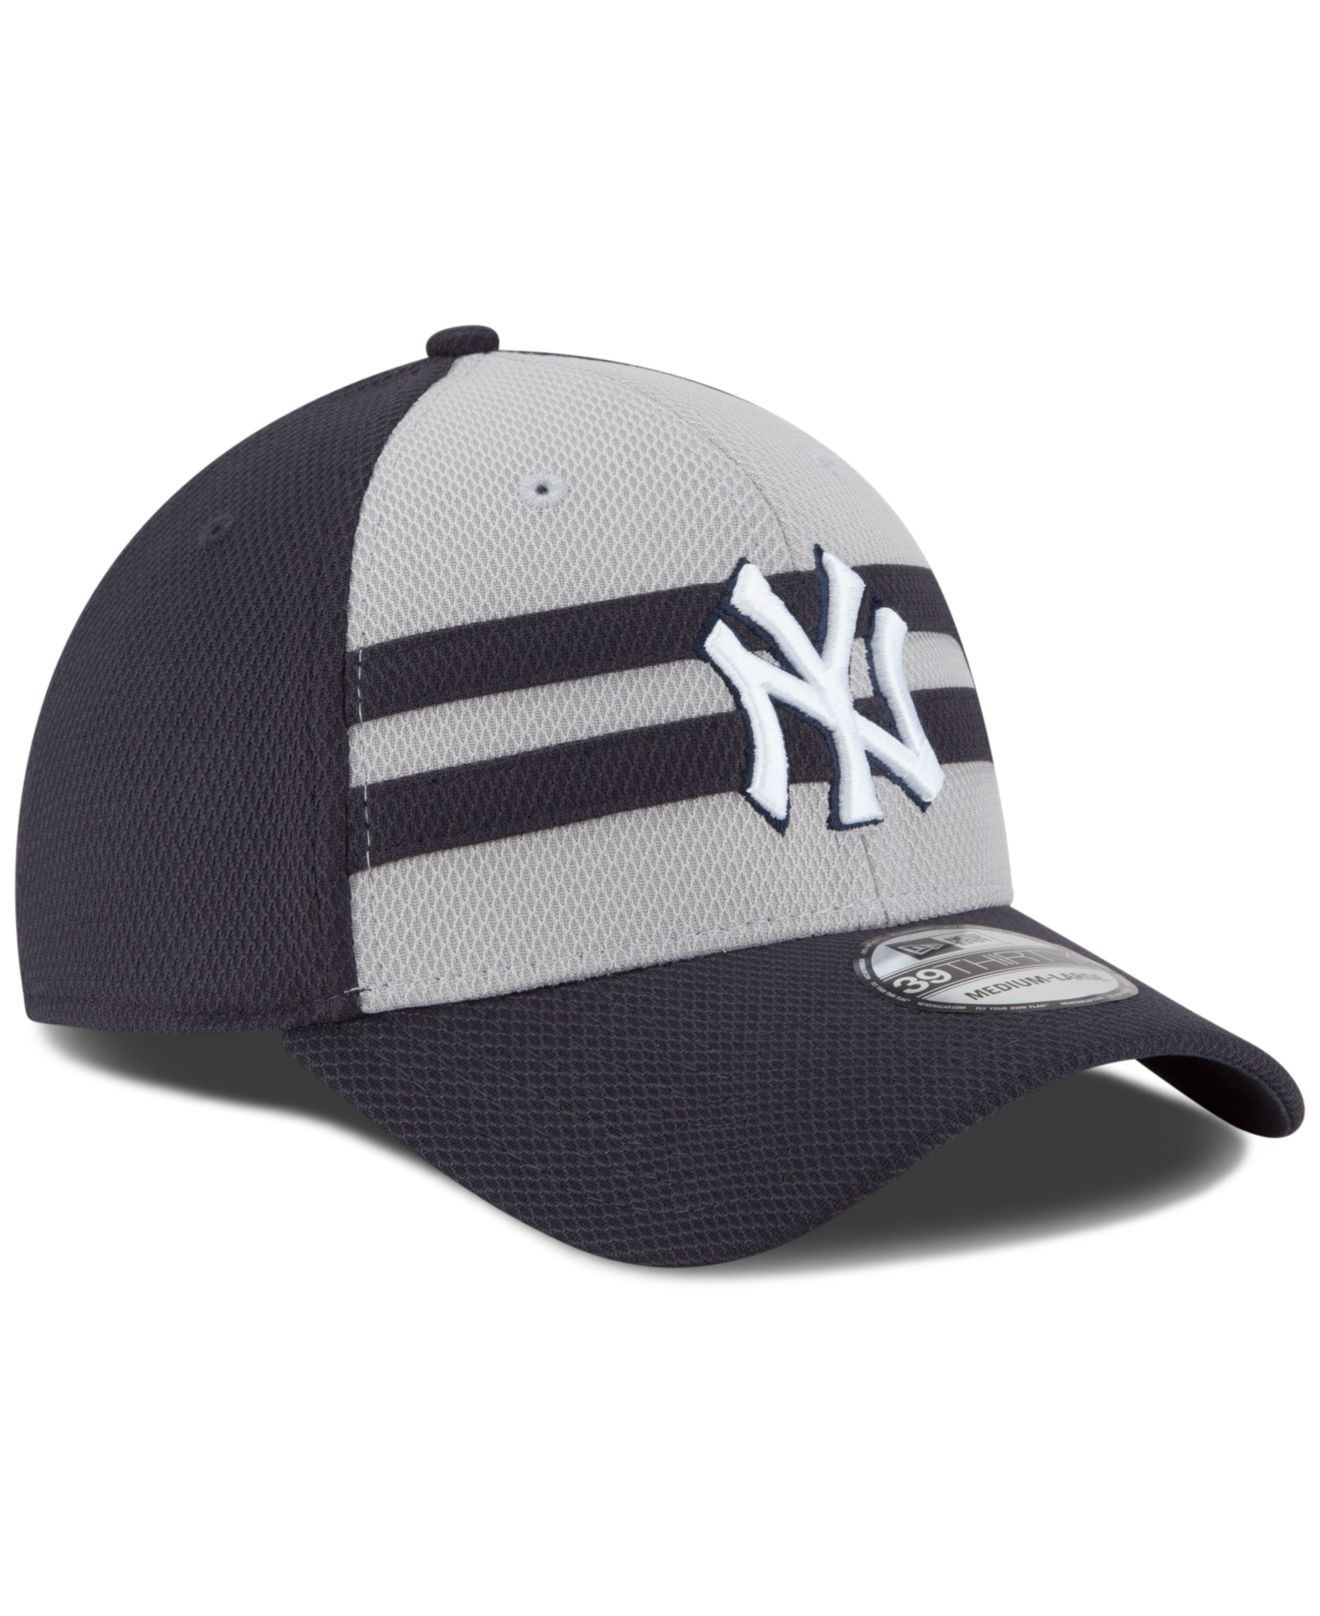 separation shoes 2ea85 31806 sale shop hurley caps hatstore b6f05 2d070 new zealand lyst ktz new york  yankees 2015 all